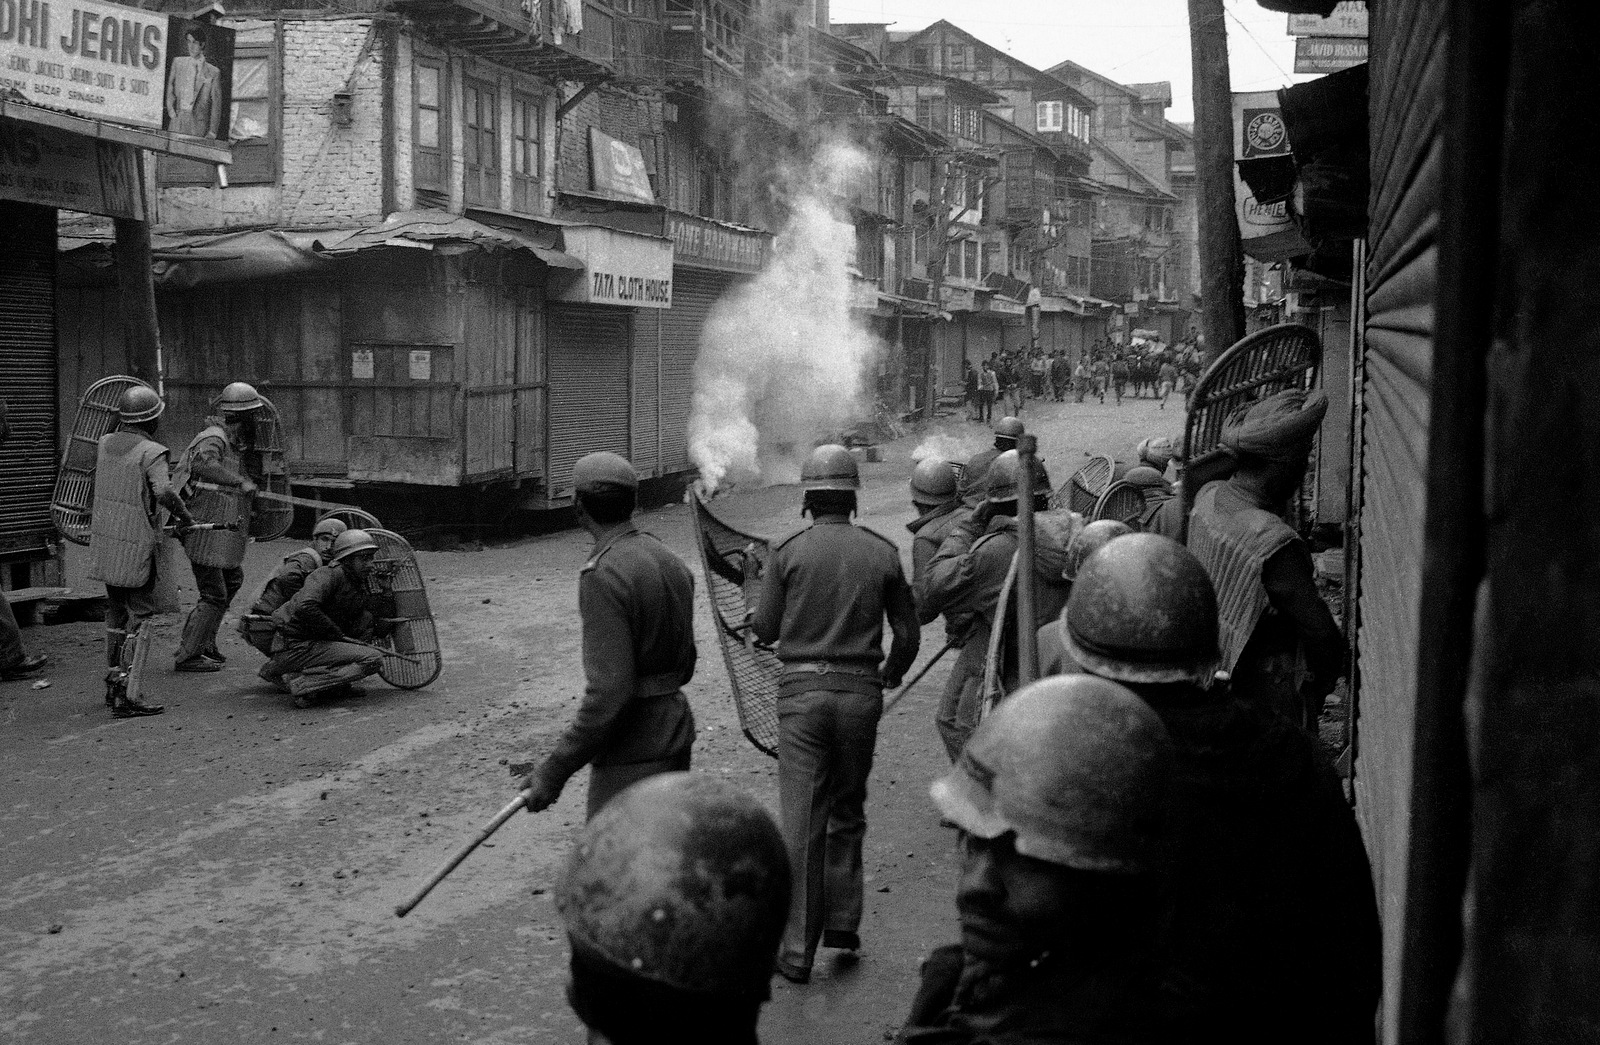 Feb 1990, Srinagar: Indian security forces fighting protesters with tear gas. 1989 saw the beginning of militant insurgency against Indian occupation in Kashmir. Image:    Mint Press News